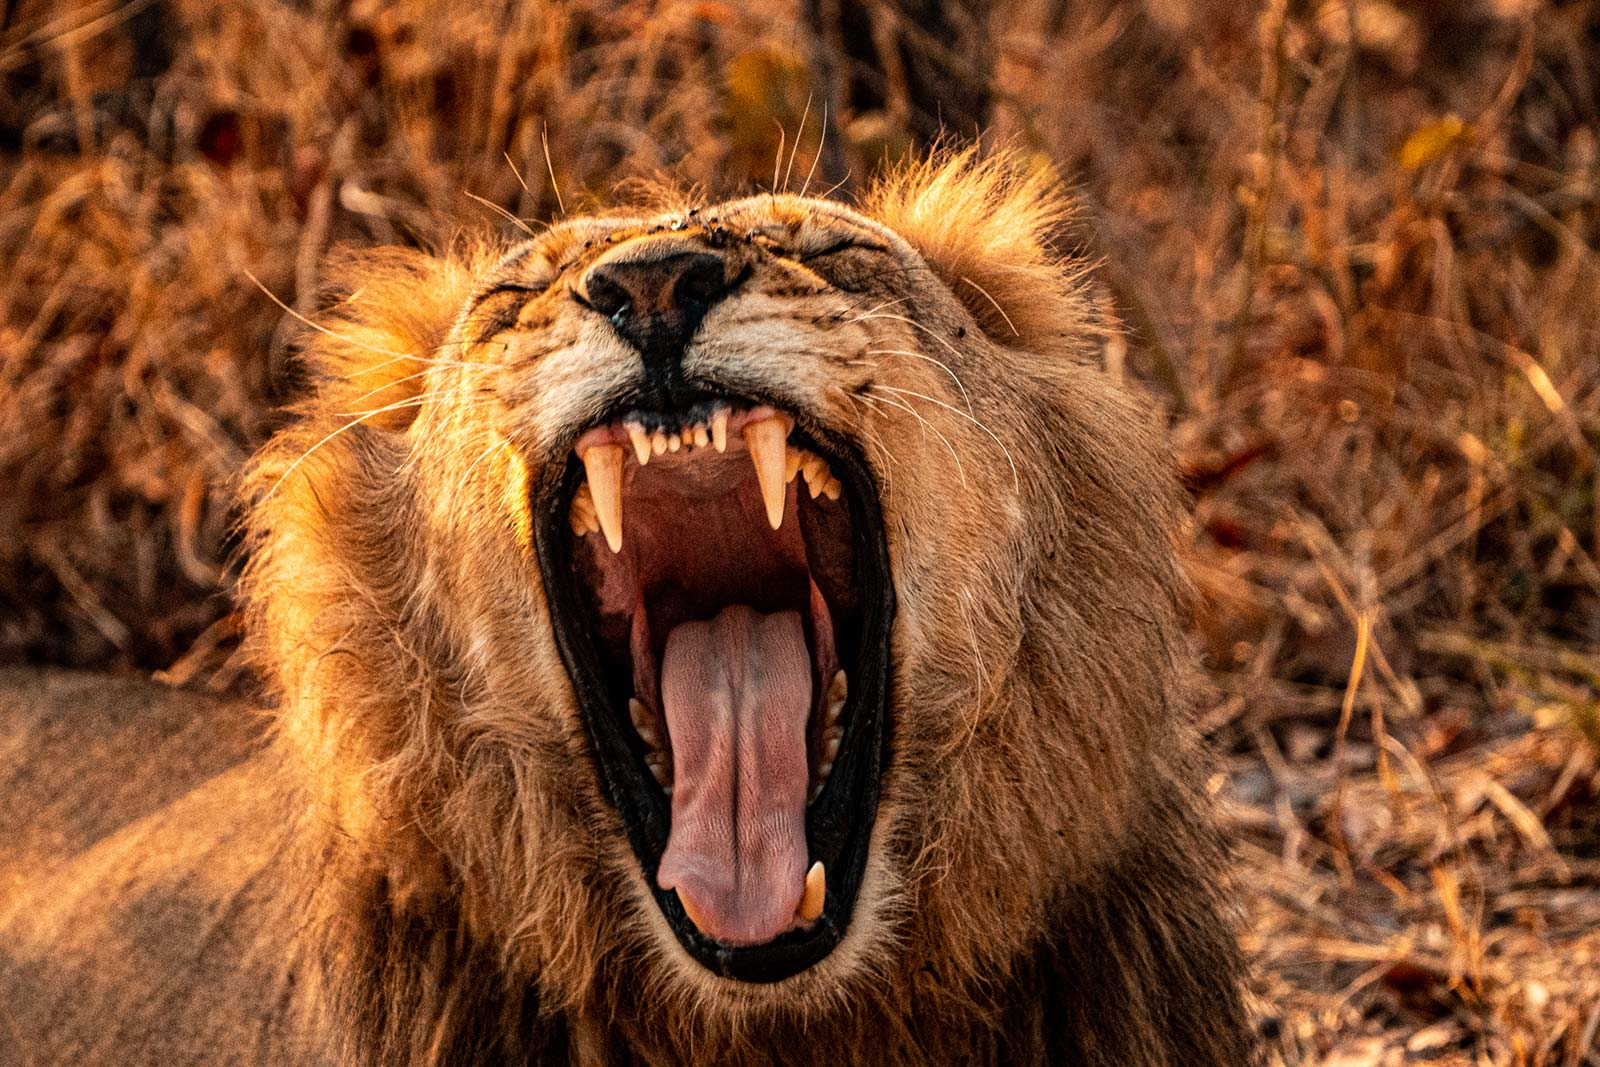 Lion yawning in Botswana, Africa. Getting chased by a herd of elephants